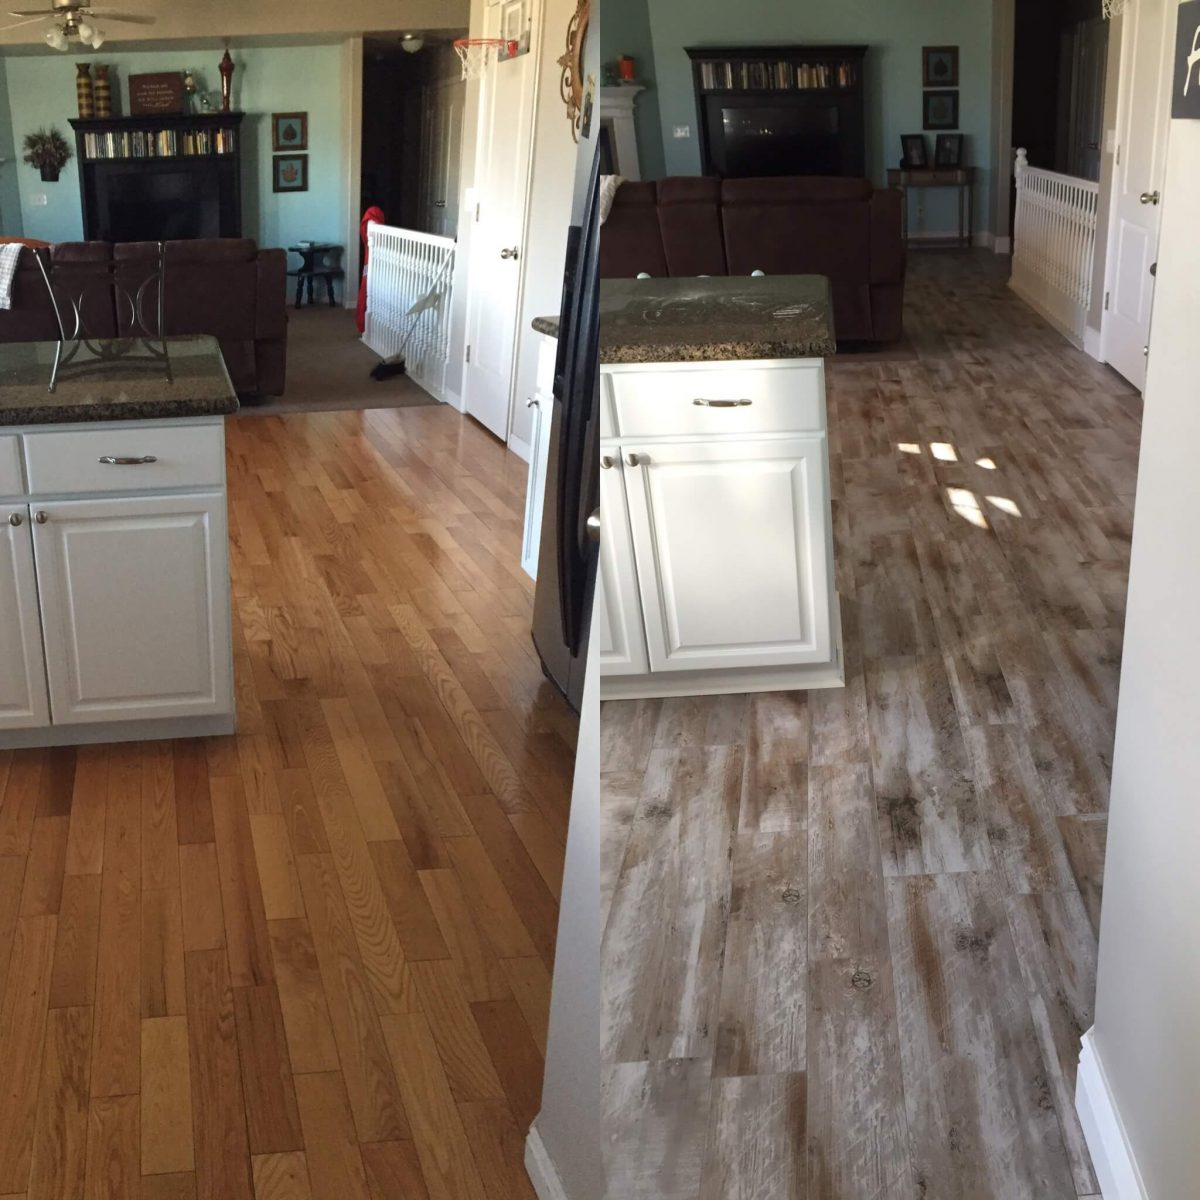 wood looking tile  treyburne antique chateau flooring before and after reveal wood looking tile   365 days of      rh   365daysofcrockpot com